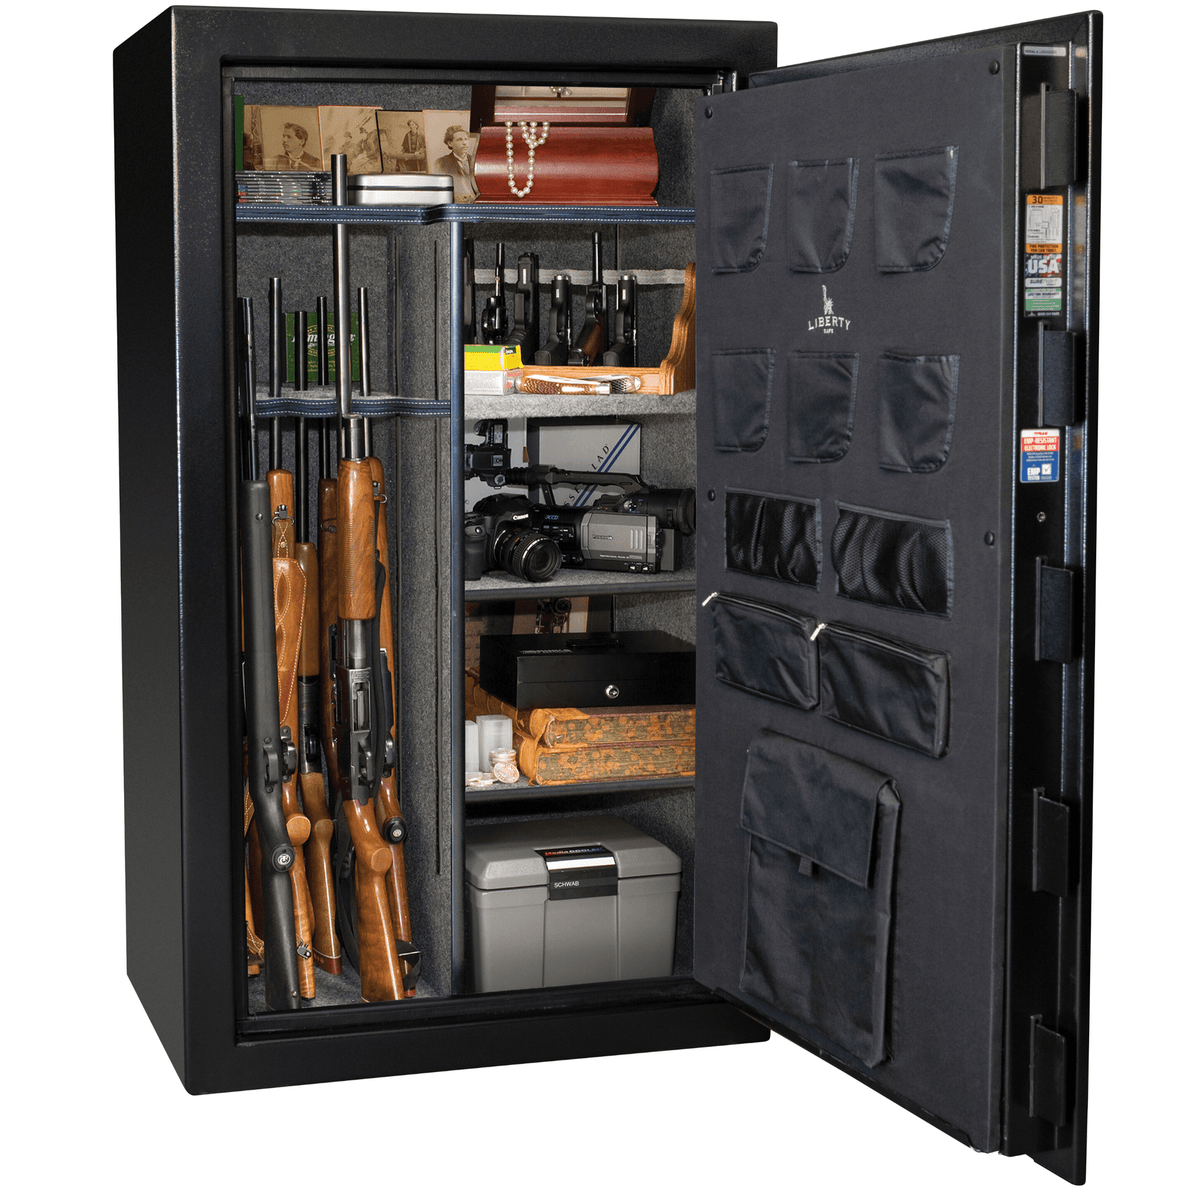 Liberty Safe Centurion 36 Textured Black Electronic Lock